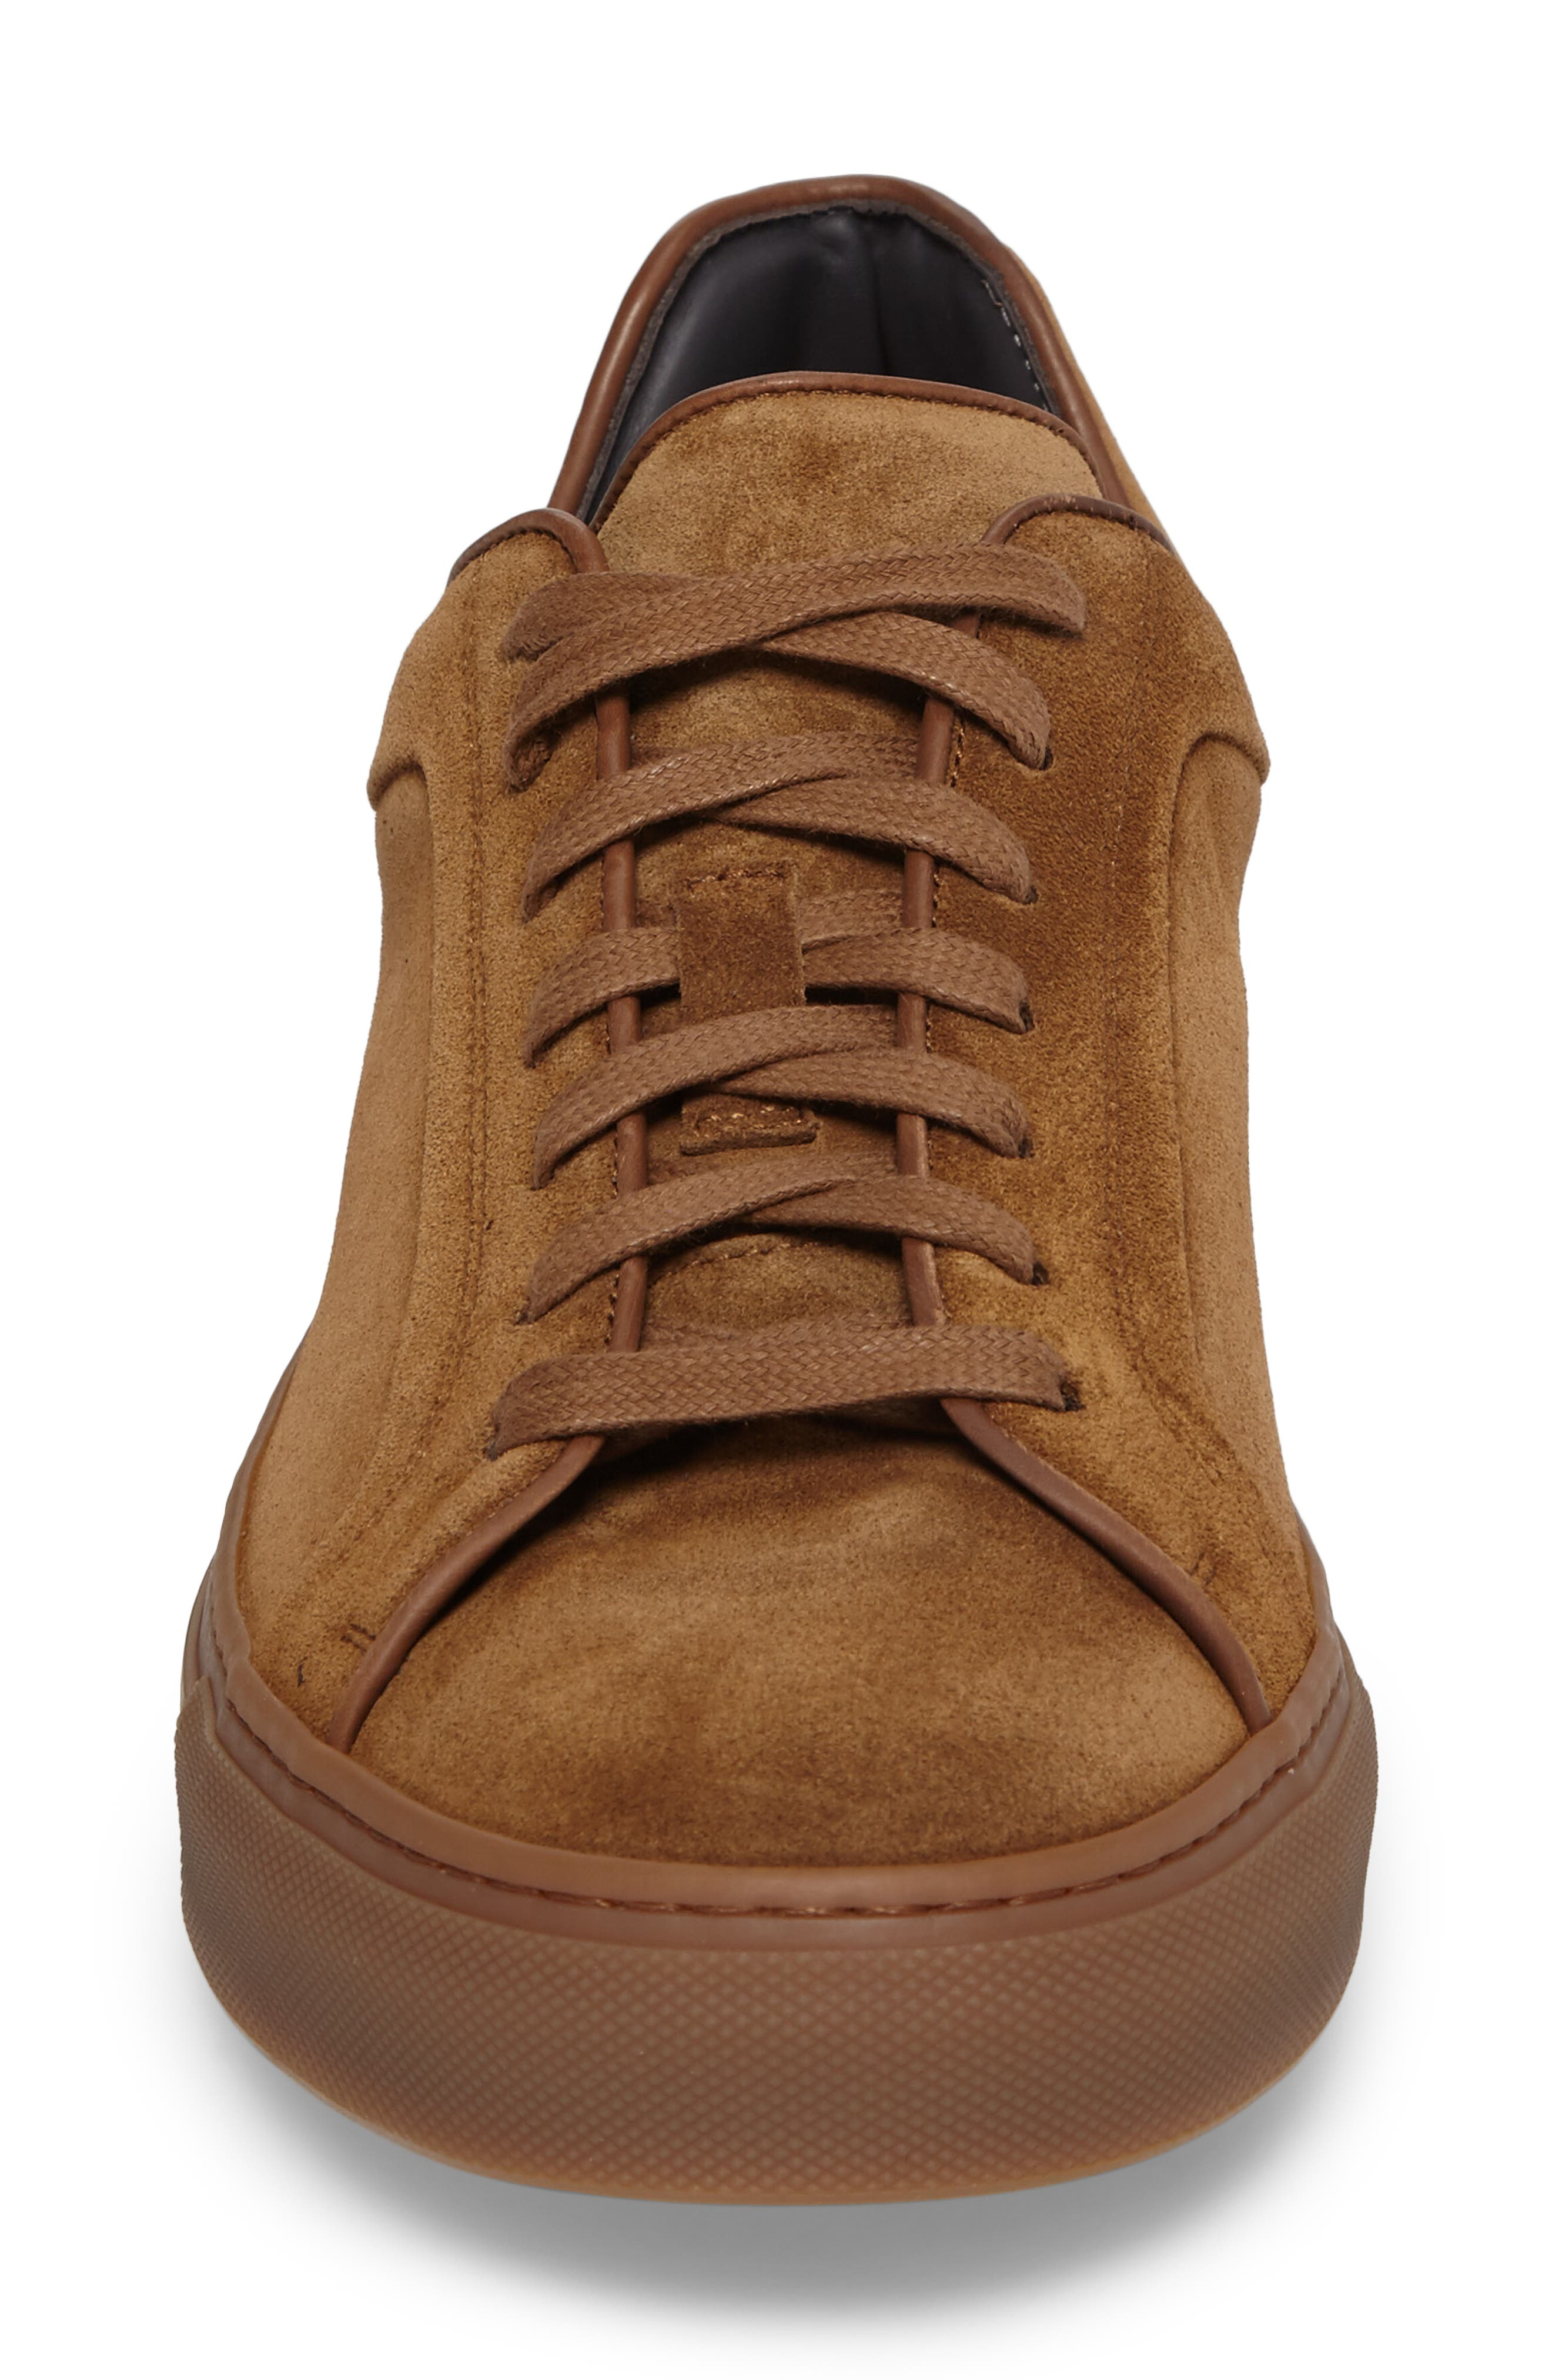 Marshall Sneaker,                             Alternate thumbnail 4, color,                             Brown Suede Leather